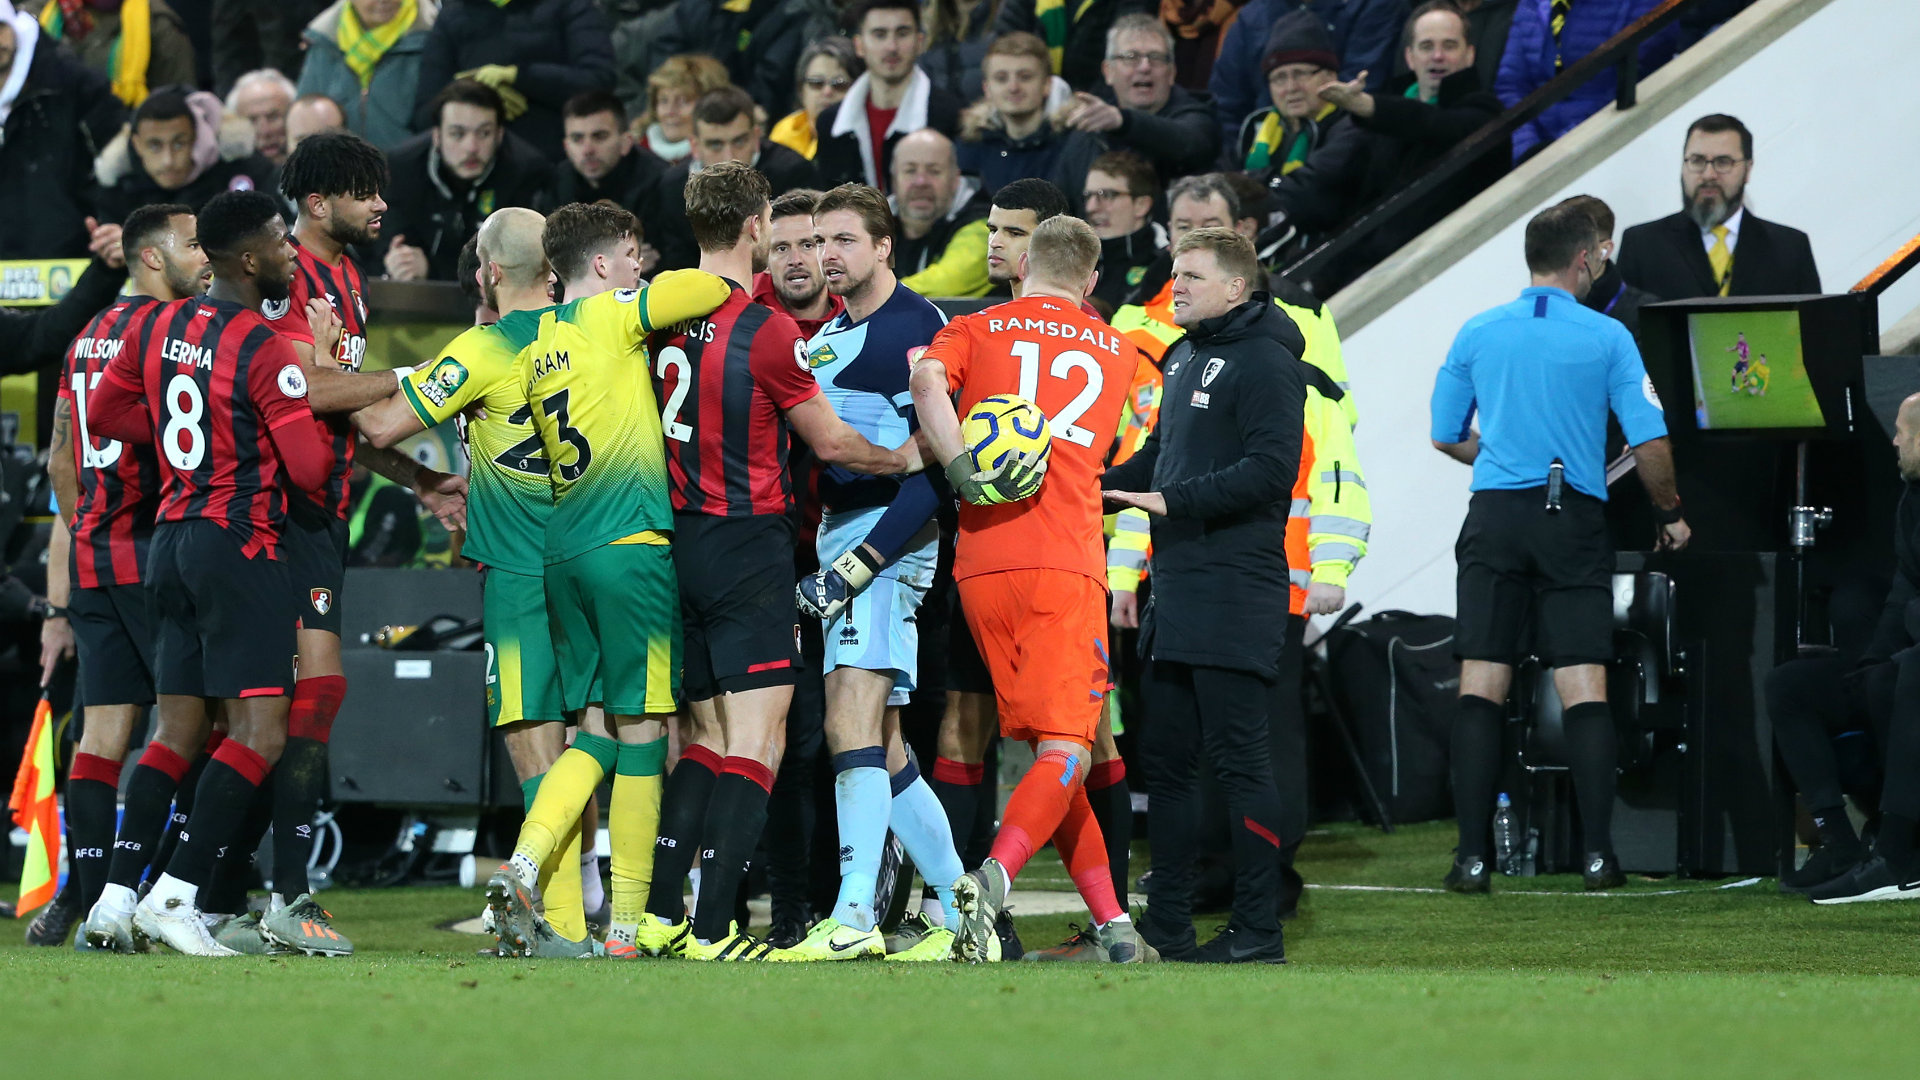 'The referee needs to make decisions' - Krul says Norwich players 'sick' of VAR use outside the stadium